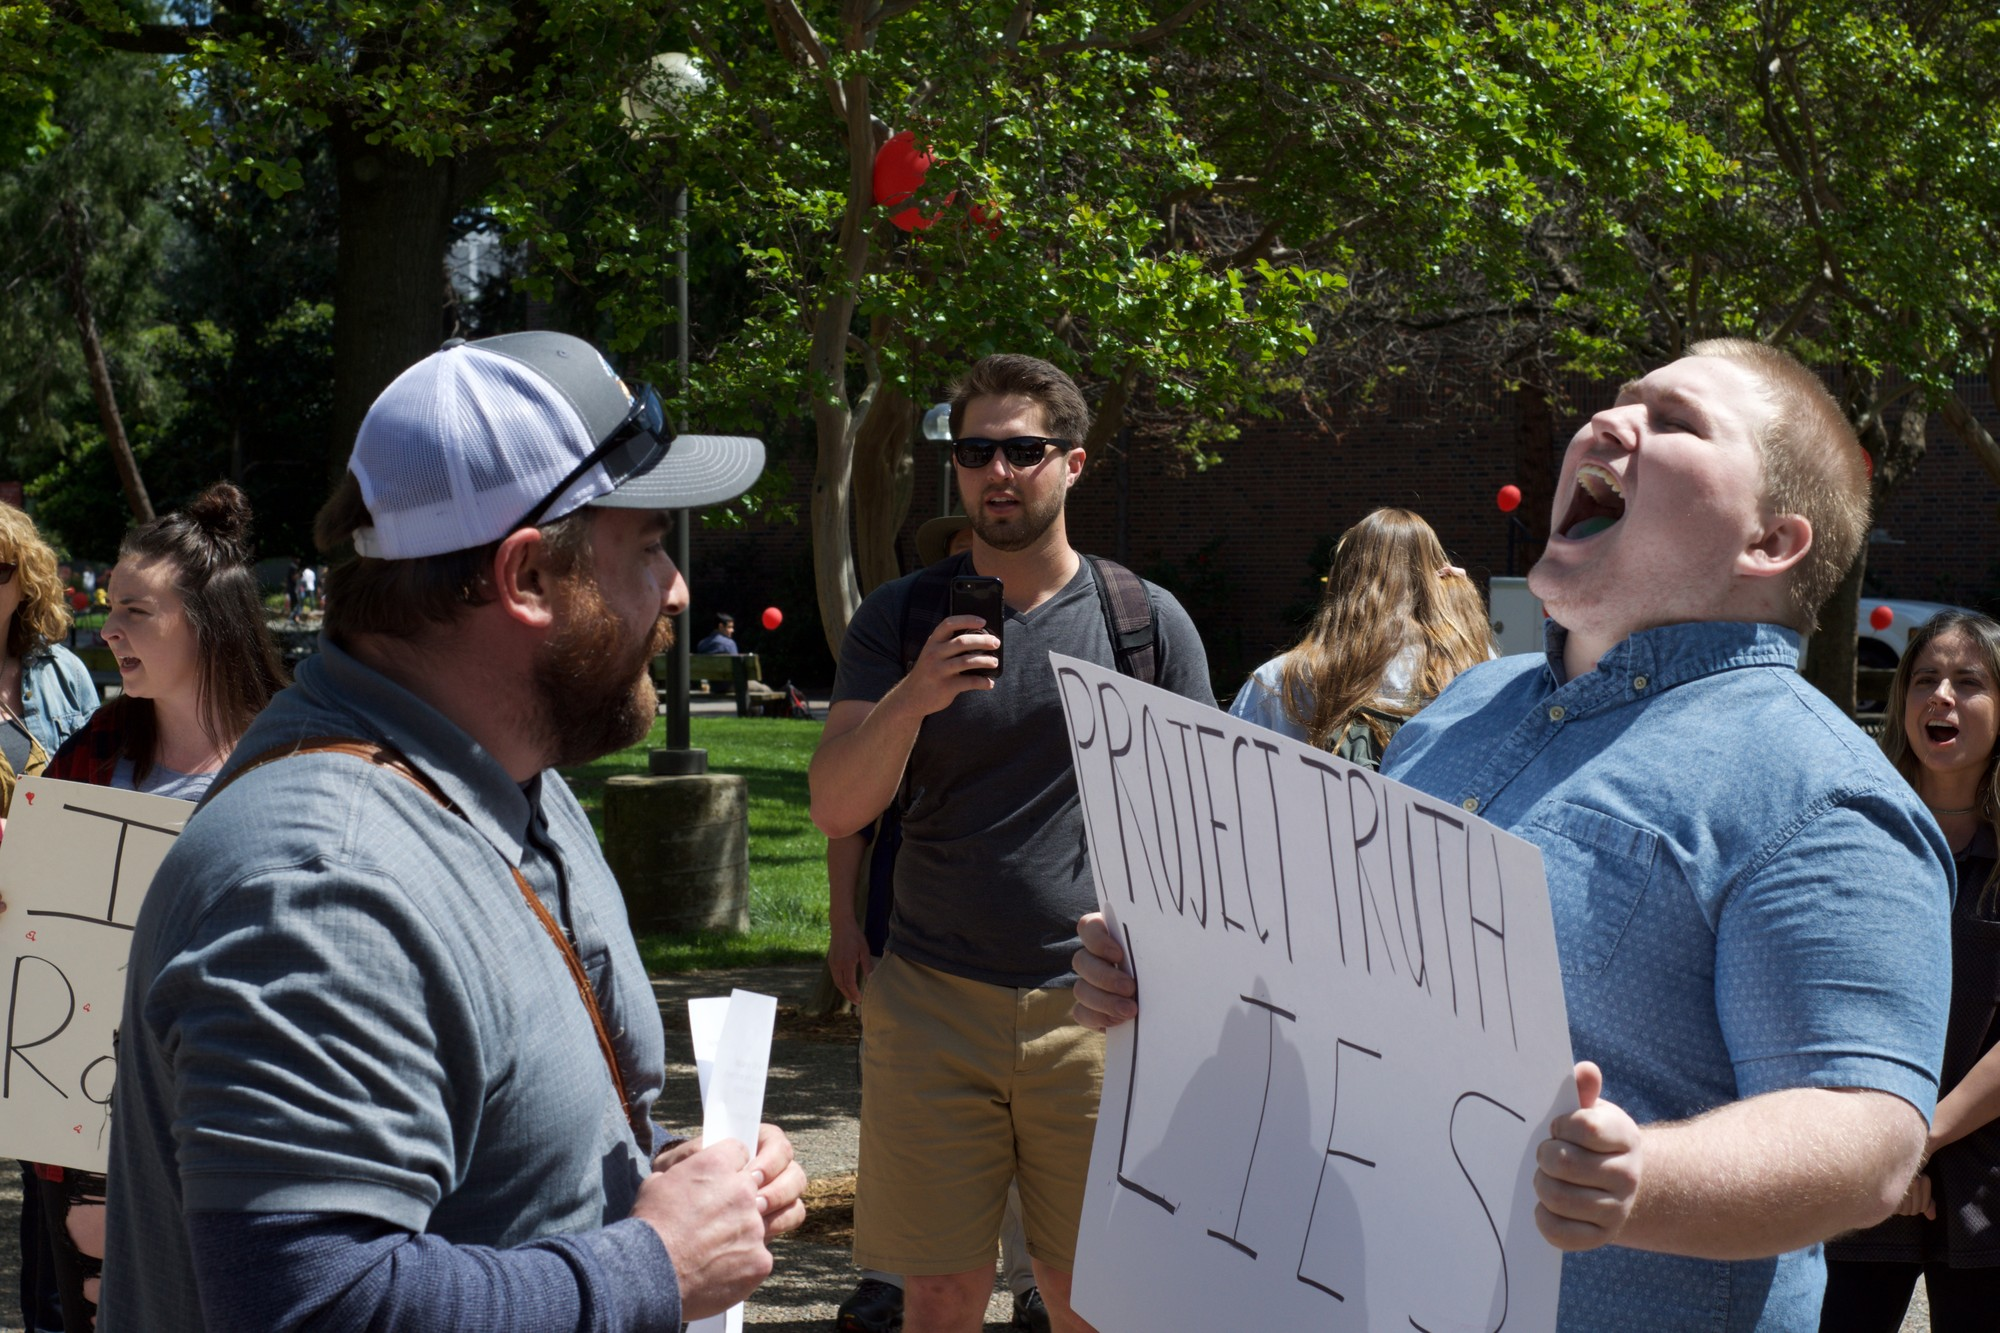 Protesters clash on campus